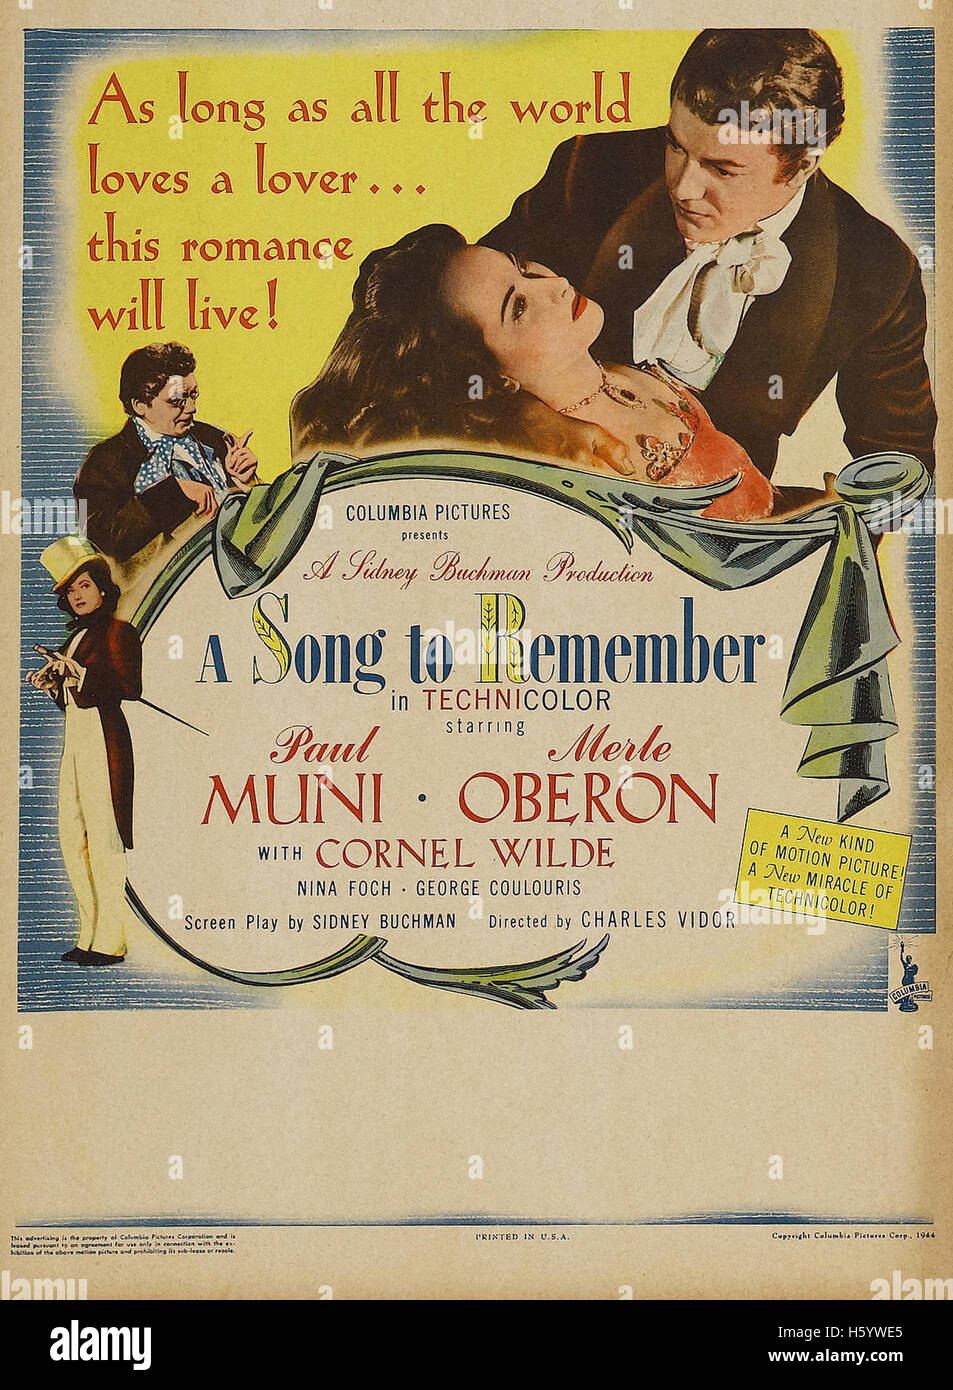 A Song to Remember - Filmplakat Stockbild